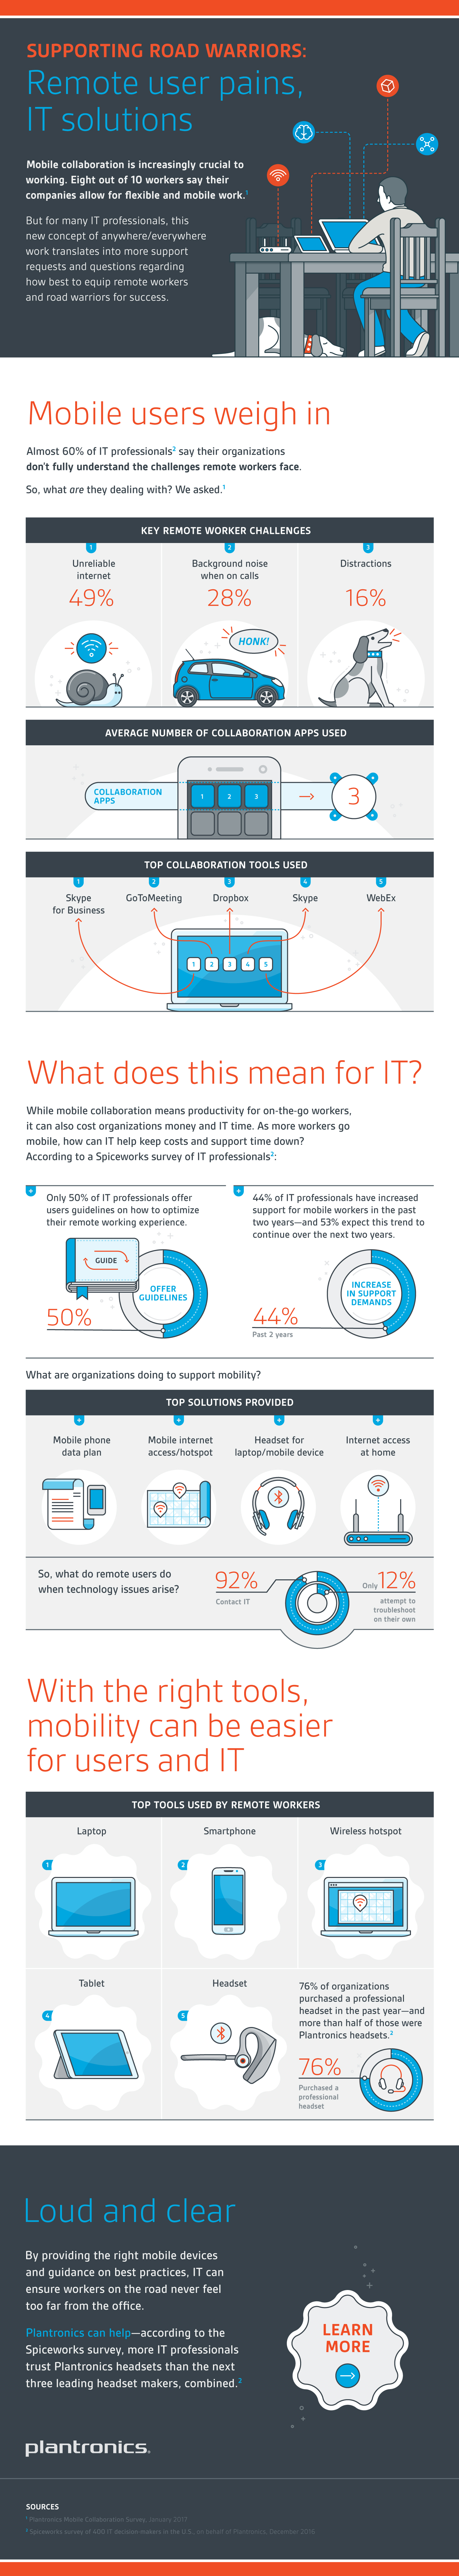 Supporting Road Warriors Infographic | Plantronics, Spiceworks | Makemark